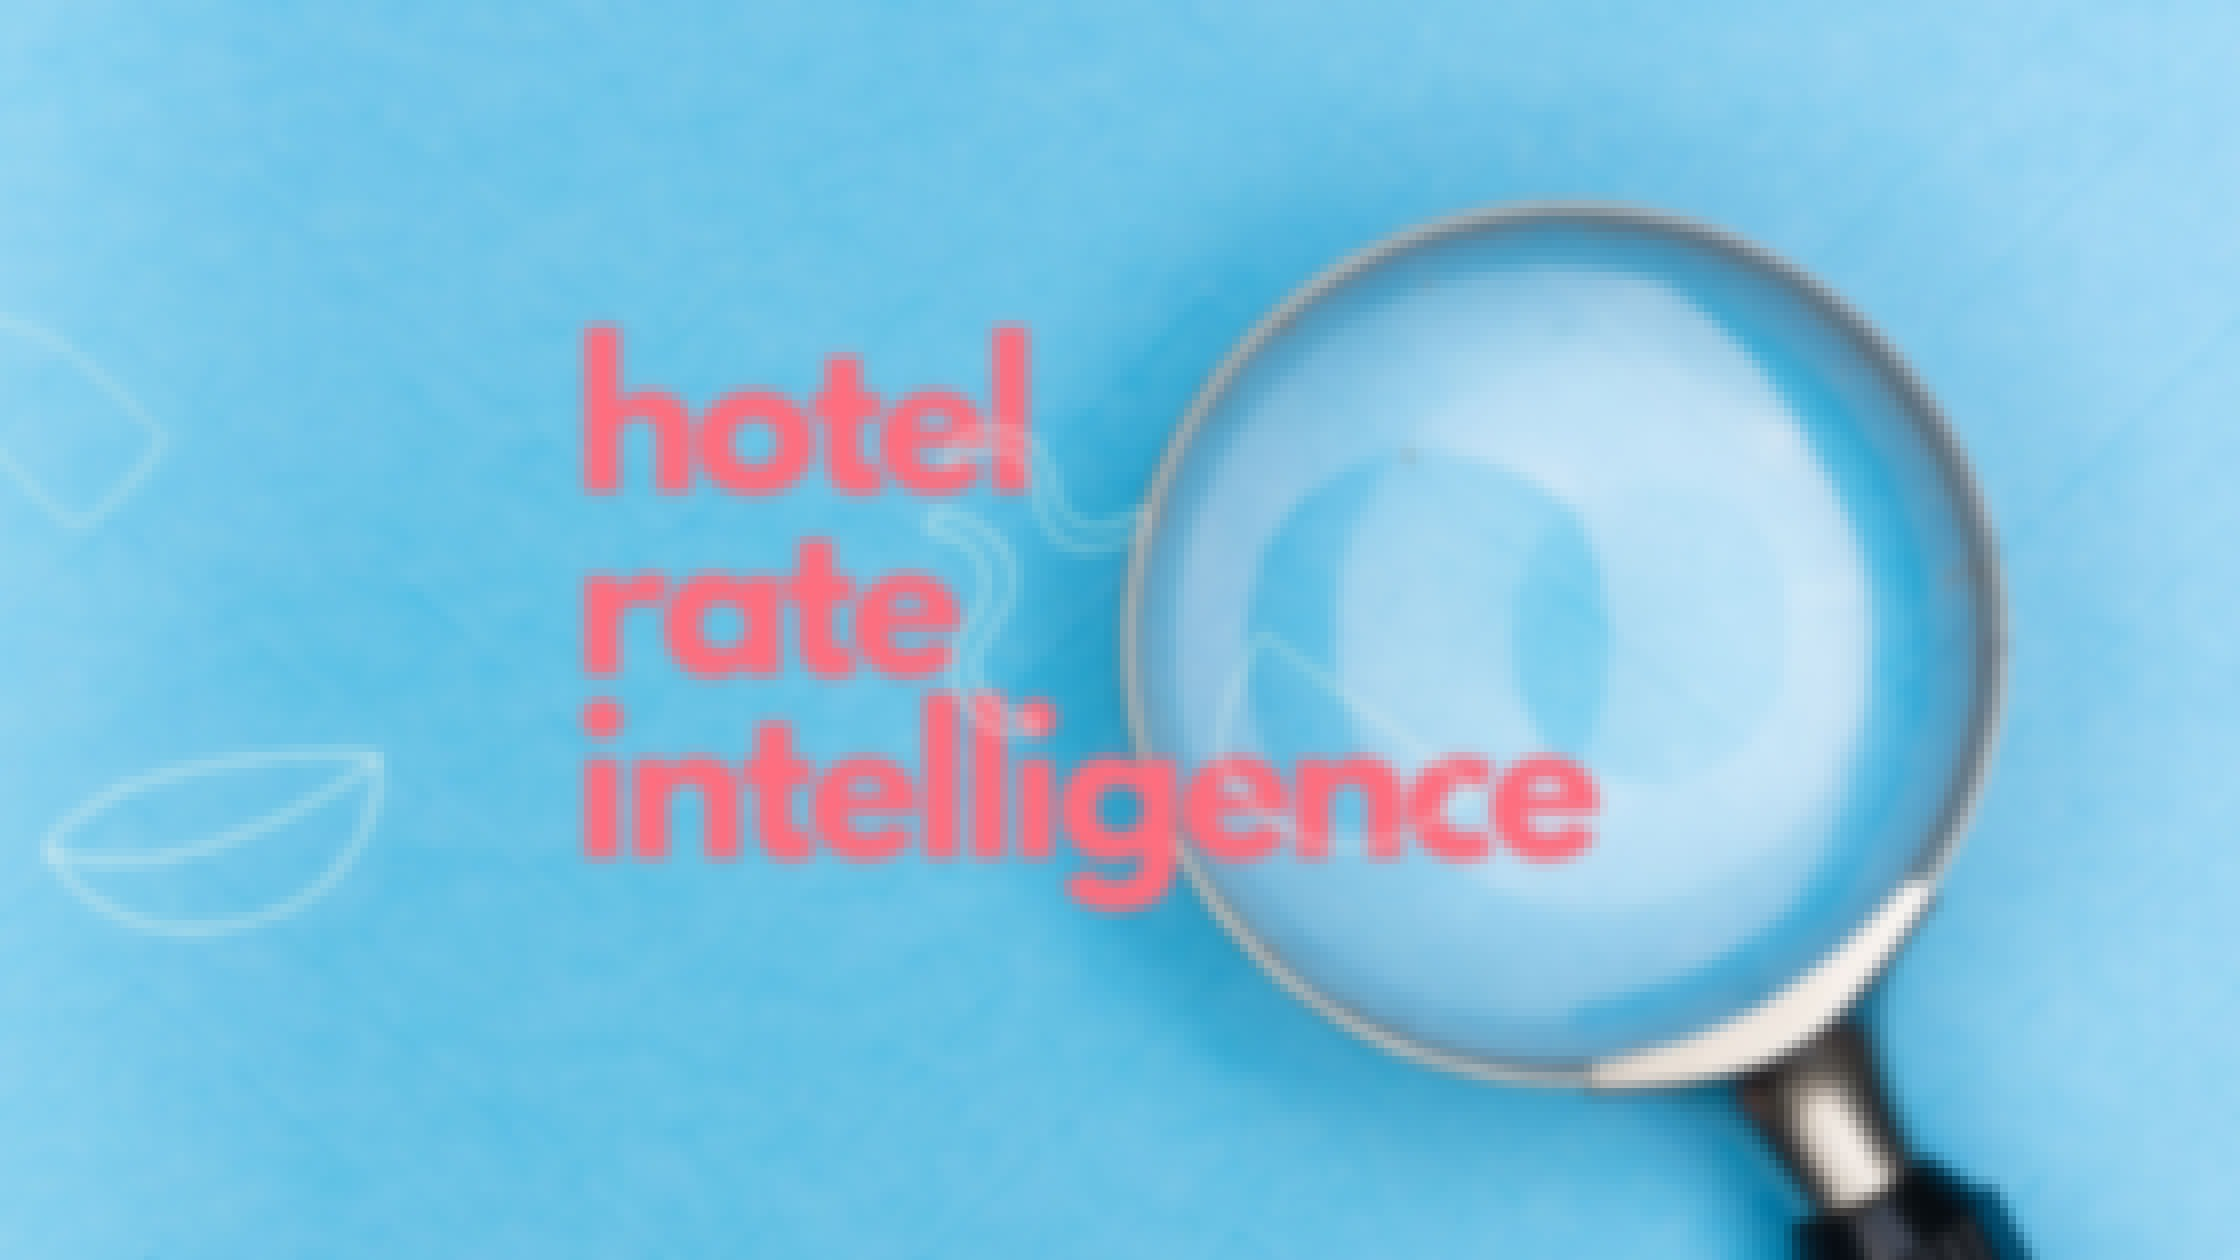 Hotel rate intelligence banner